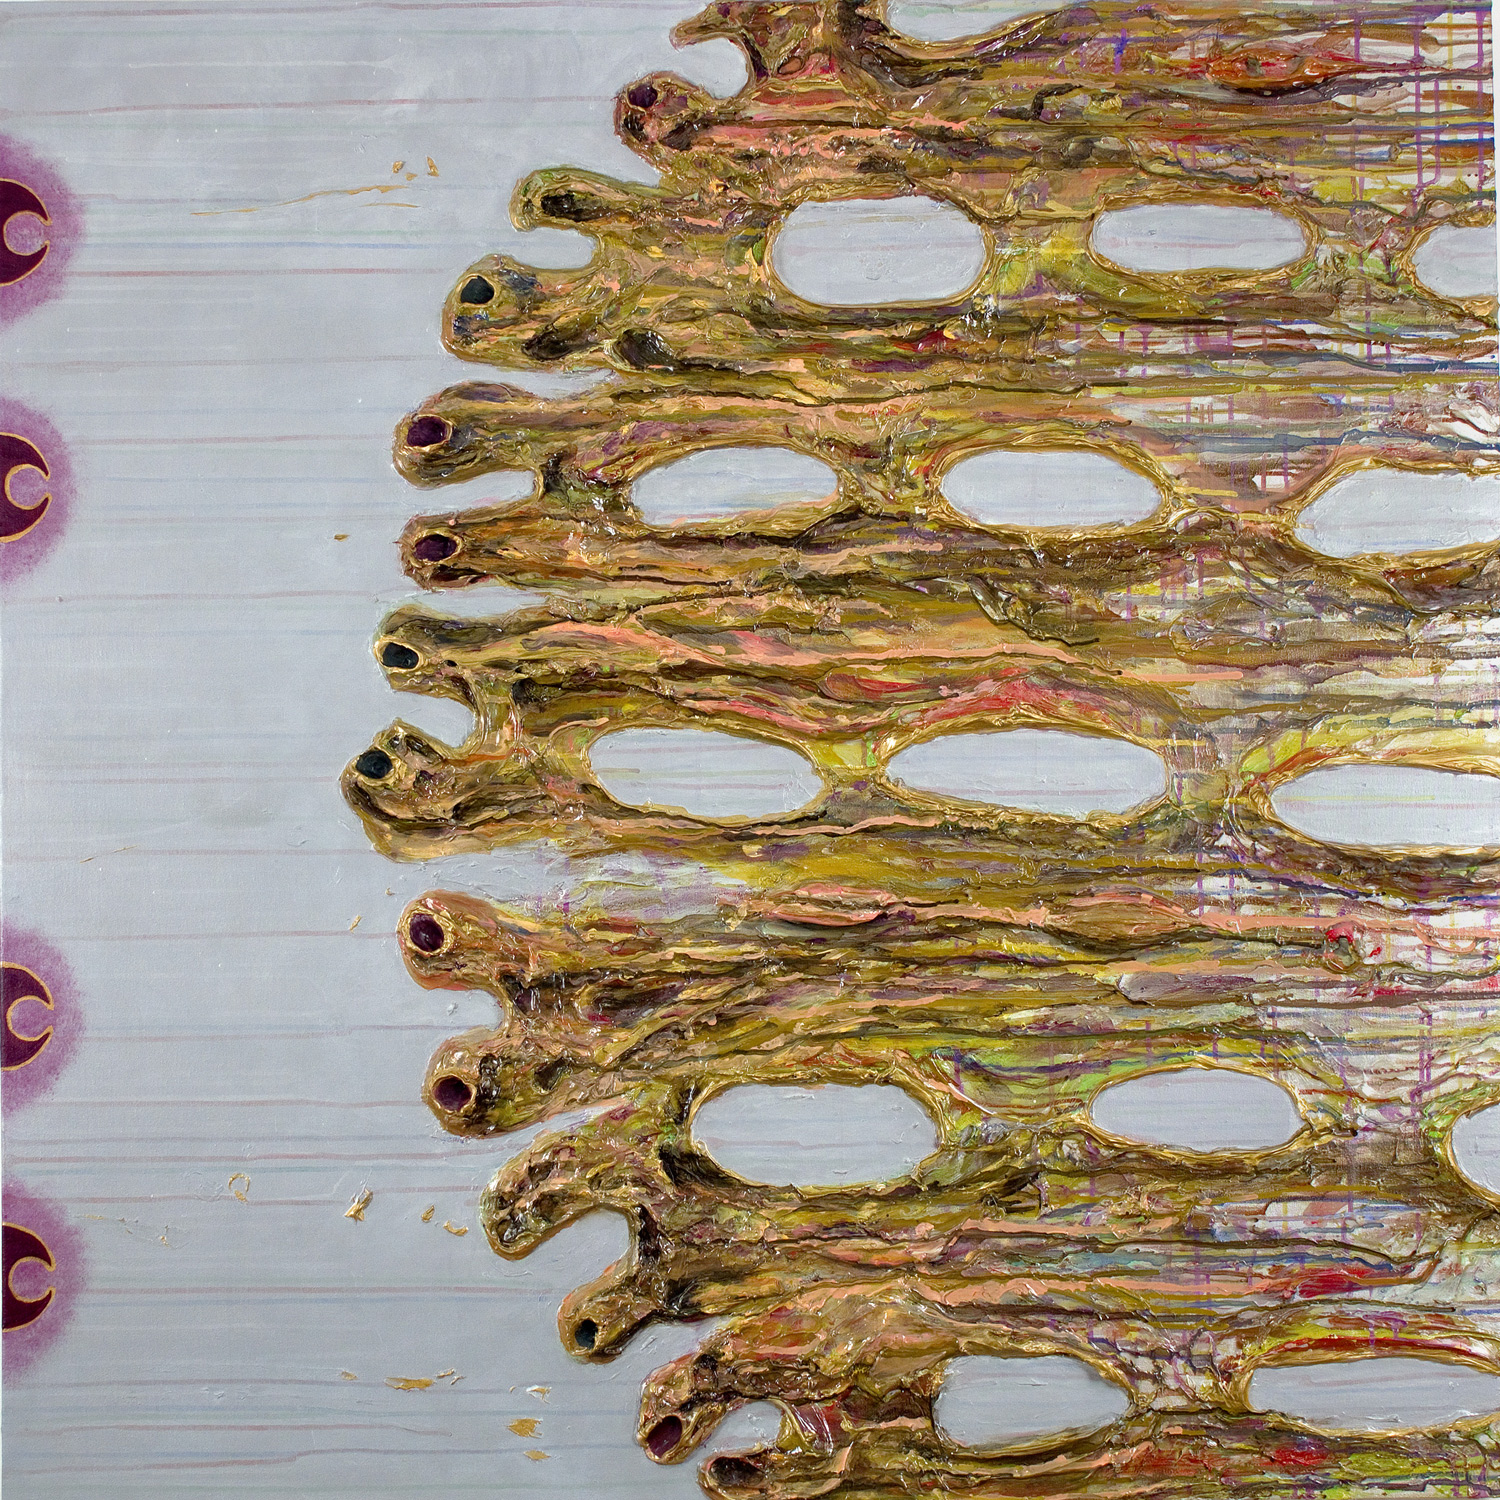 15 March , oil, acrylic and metallic paint on canvas, 48 in x 48 in, 2010.